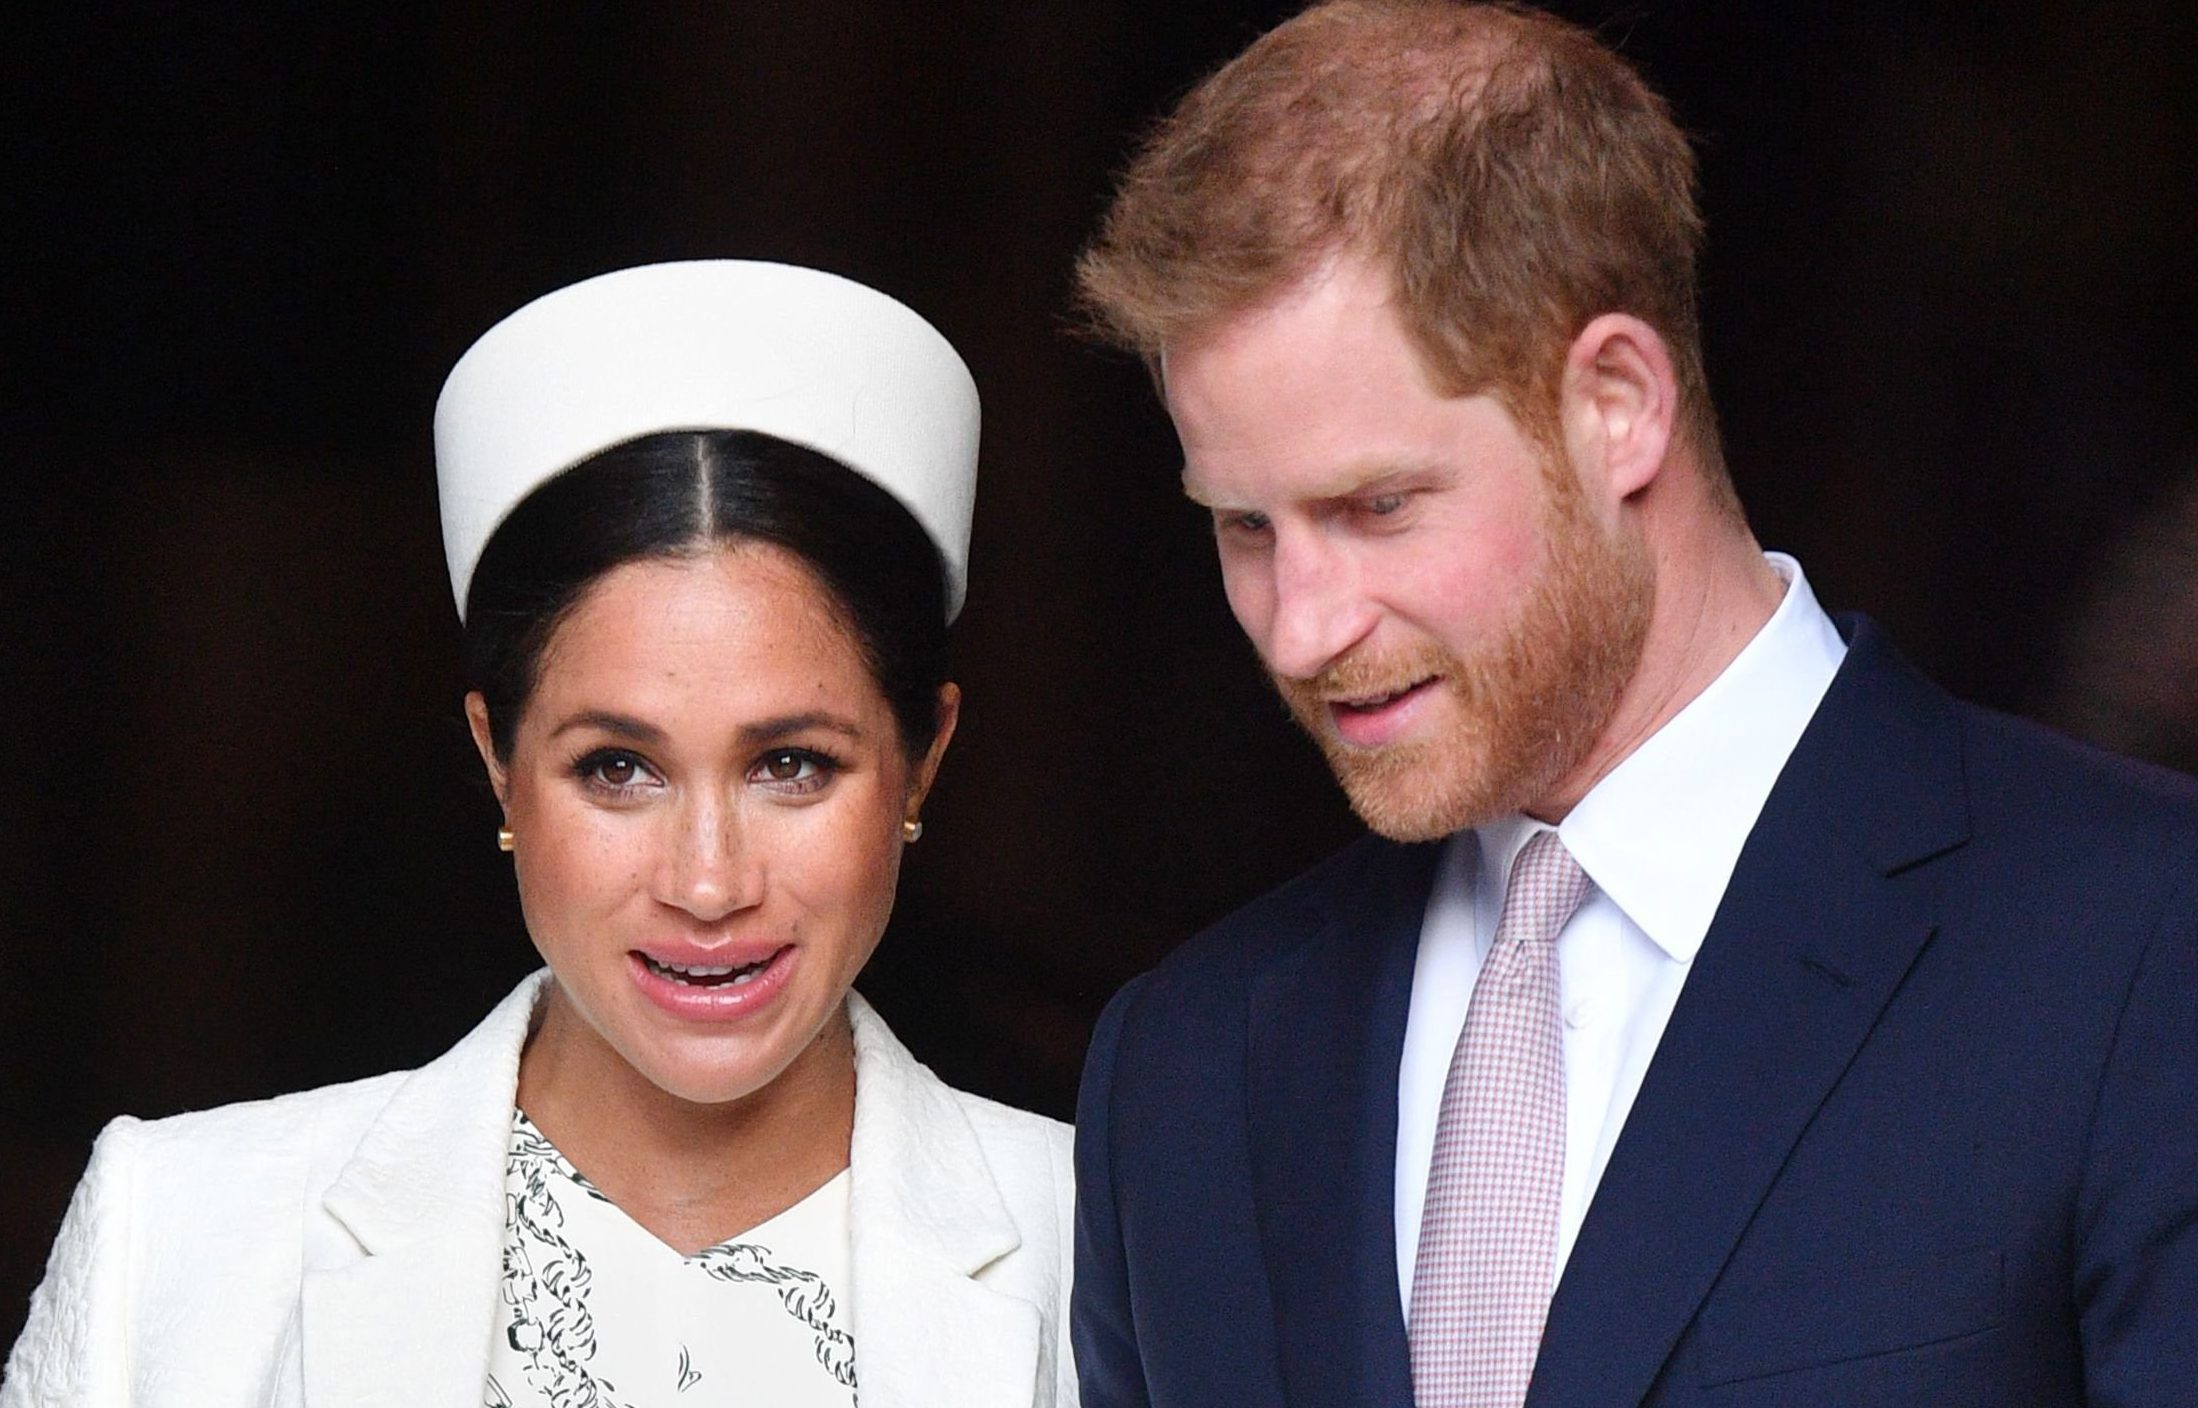 The Duke and Duchess of Sussex at Commonwealth Day memorial service in 2019